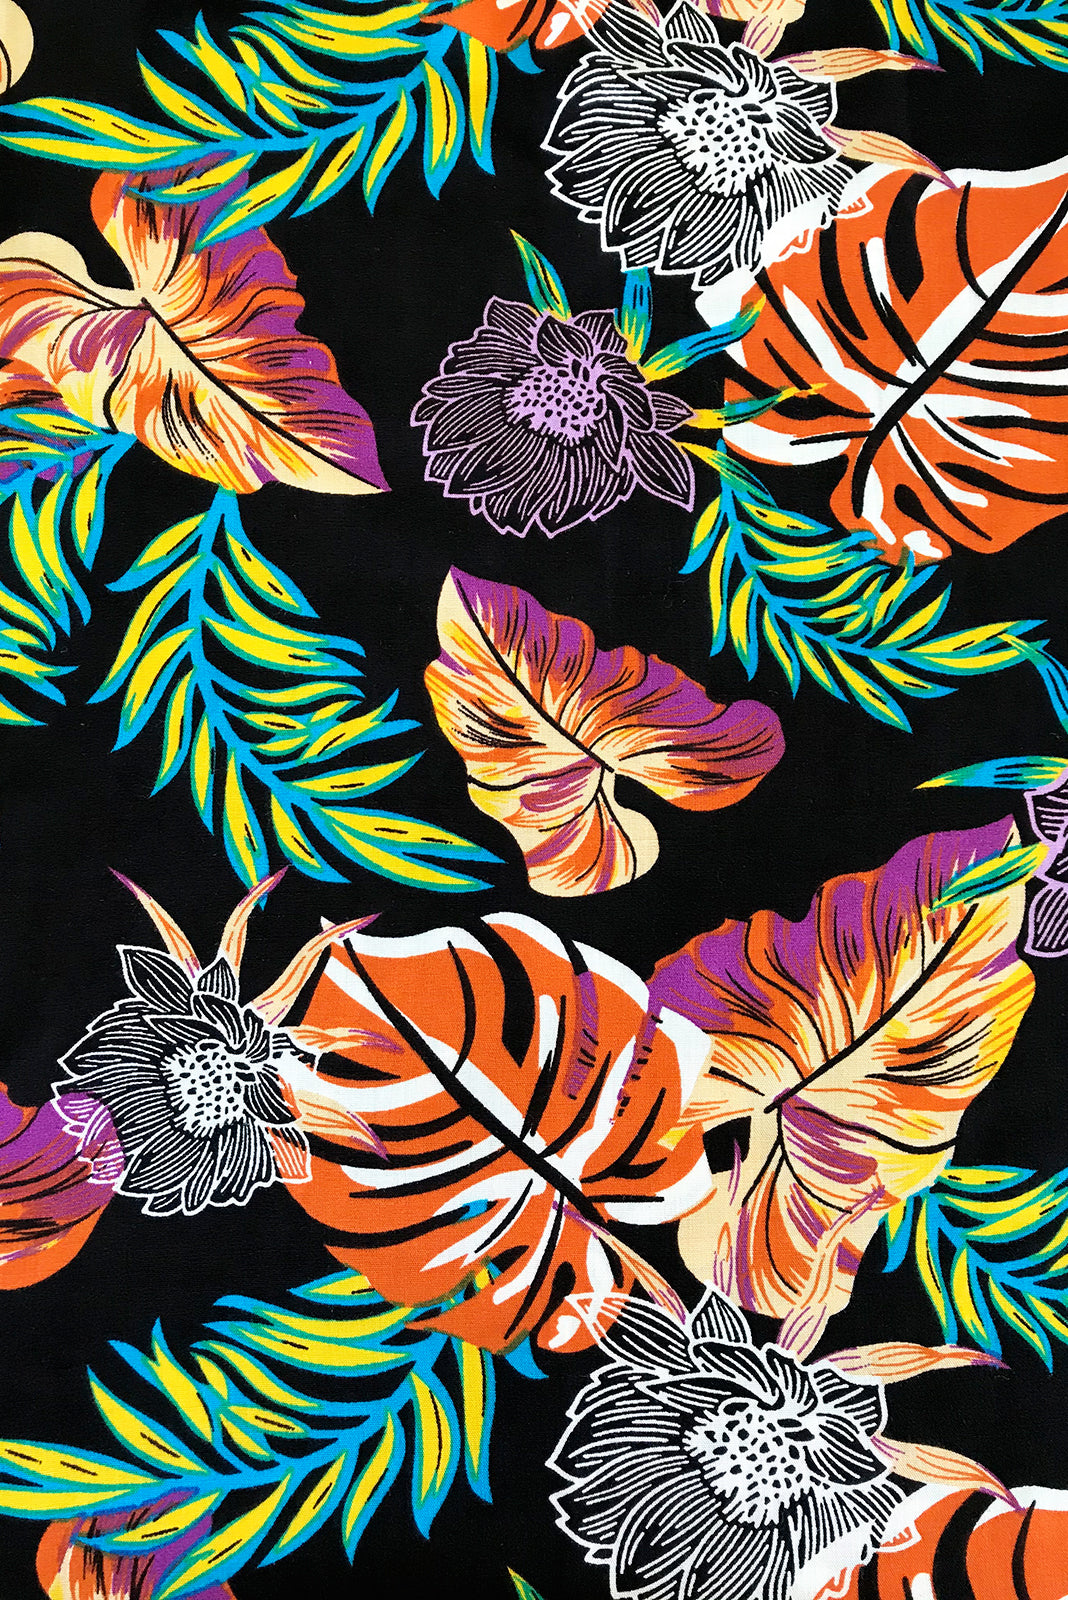 Fabric Swatch of Parakeet Jungle Flowers Pants featuring 100% viscose in black base with vibrant jungle leaf print,